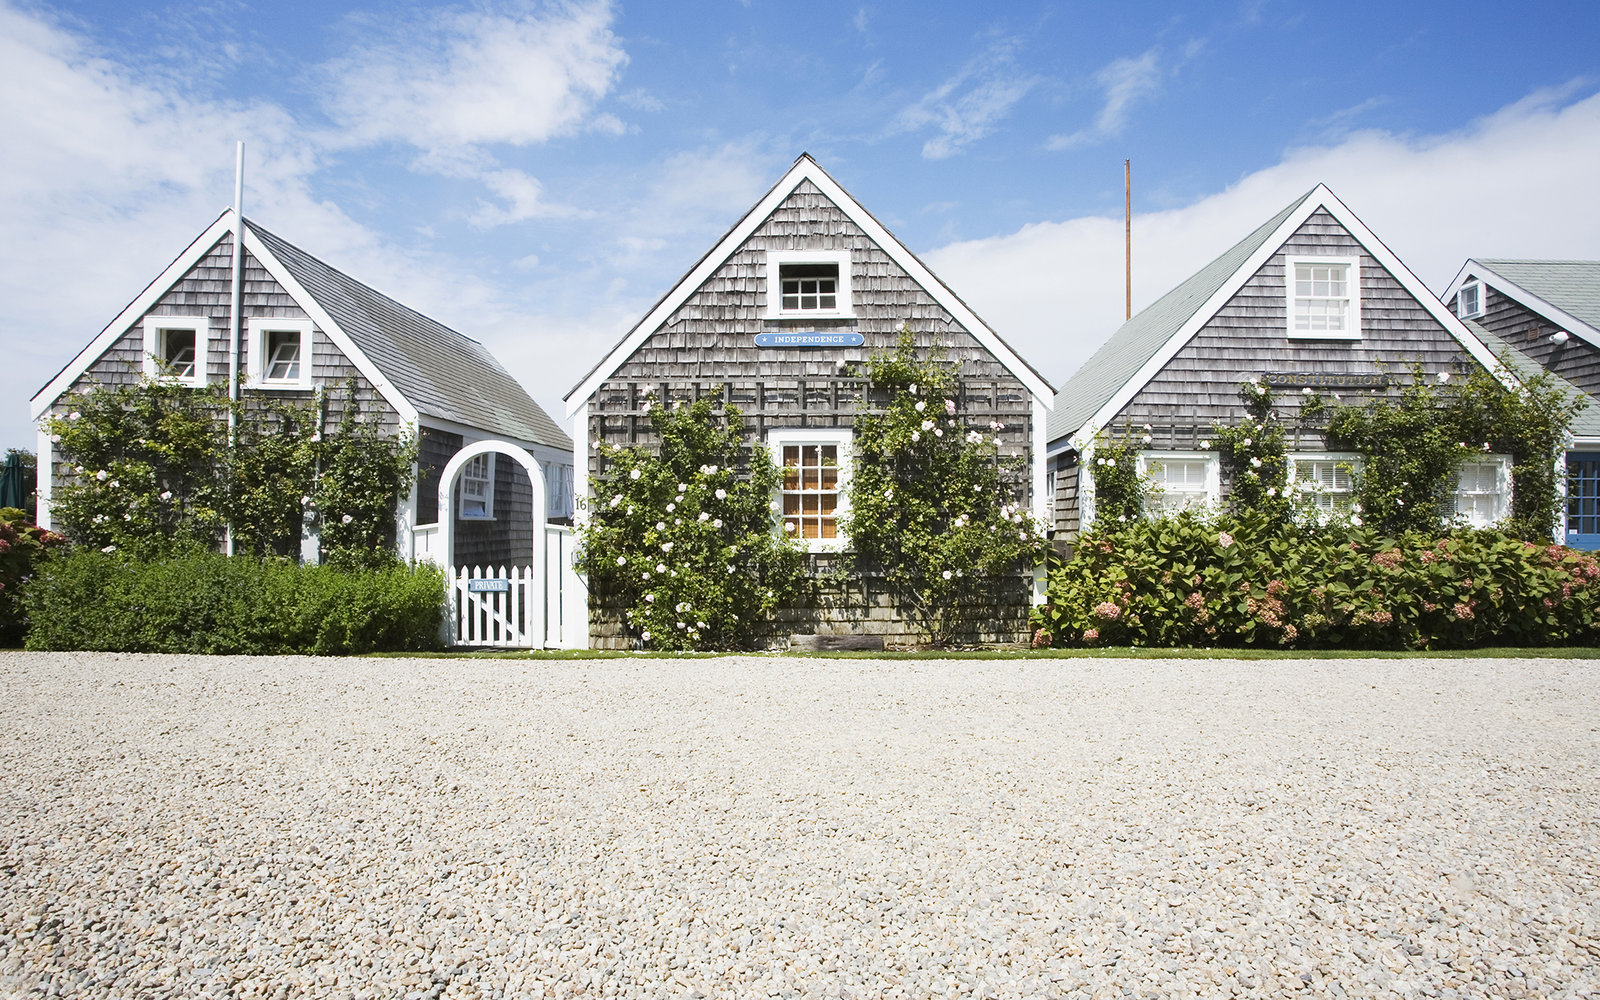 Rose-covered cottages, Nantucket Island, Massachusetts, USA